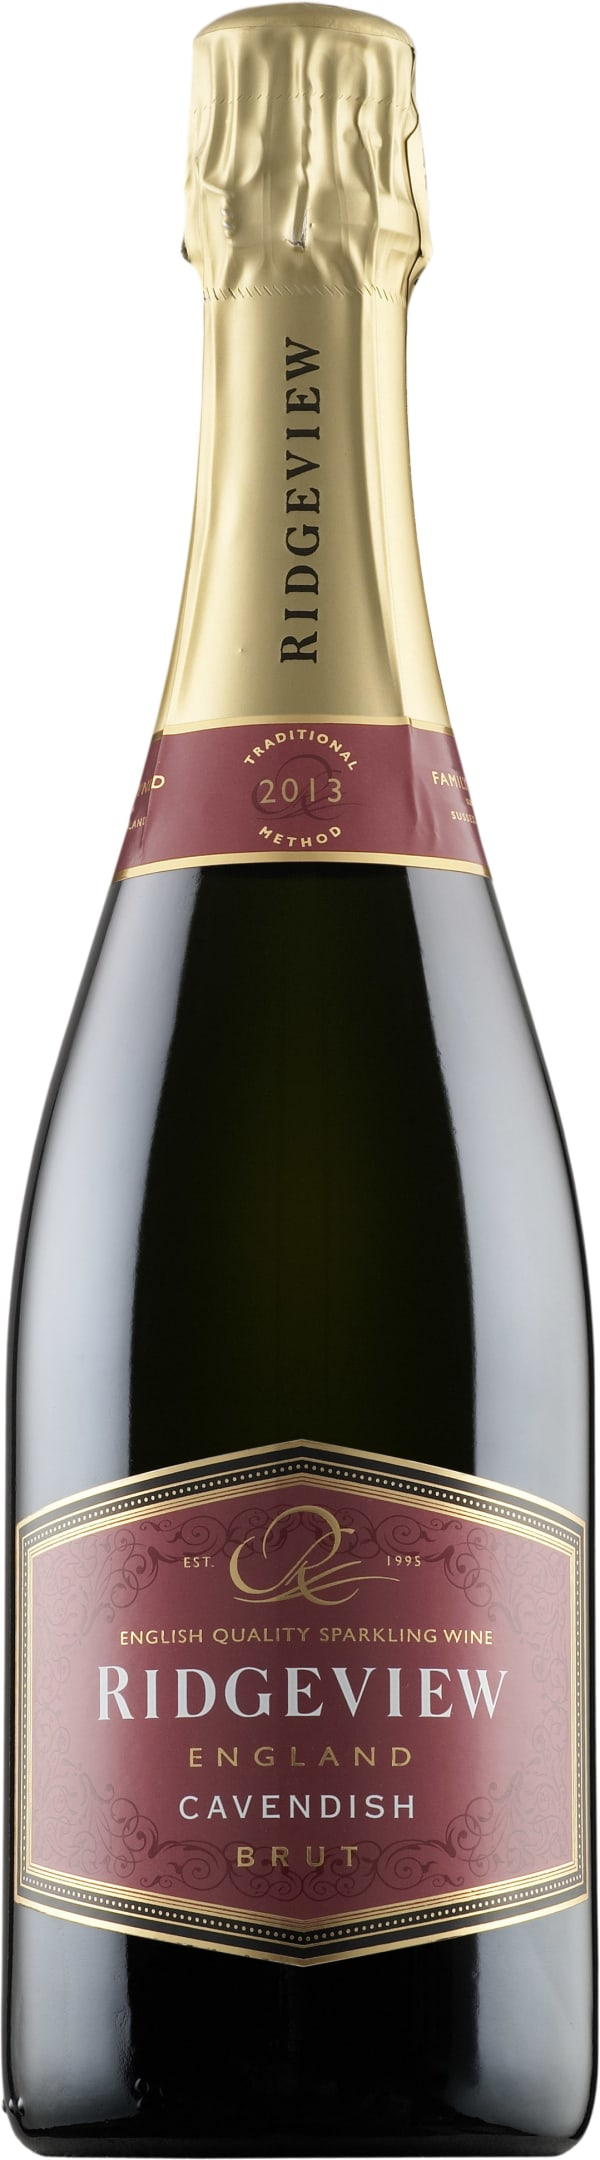 Ridgeview Cavendish Brut 2013